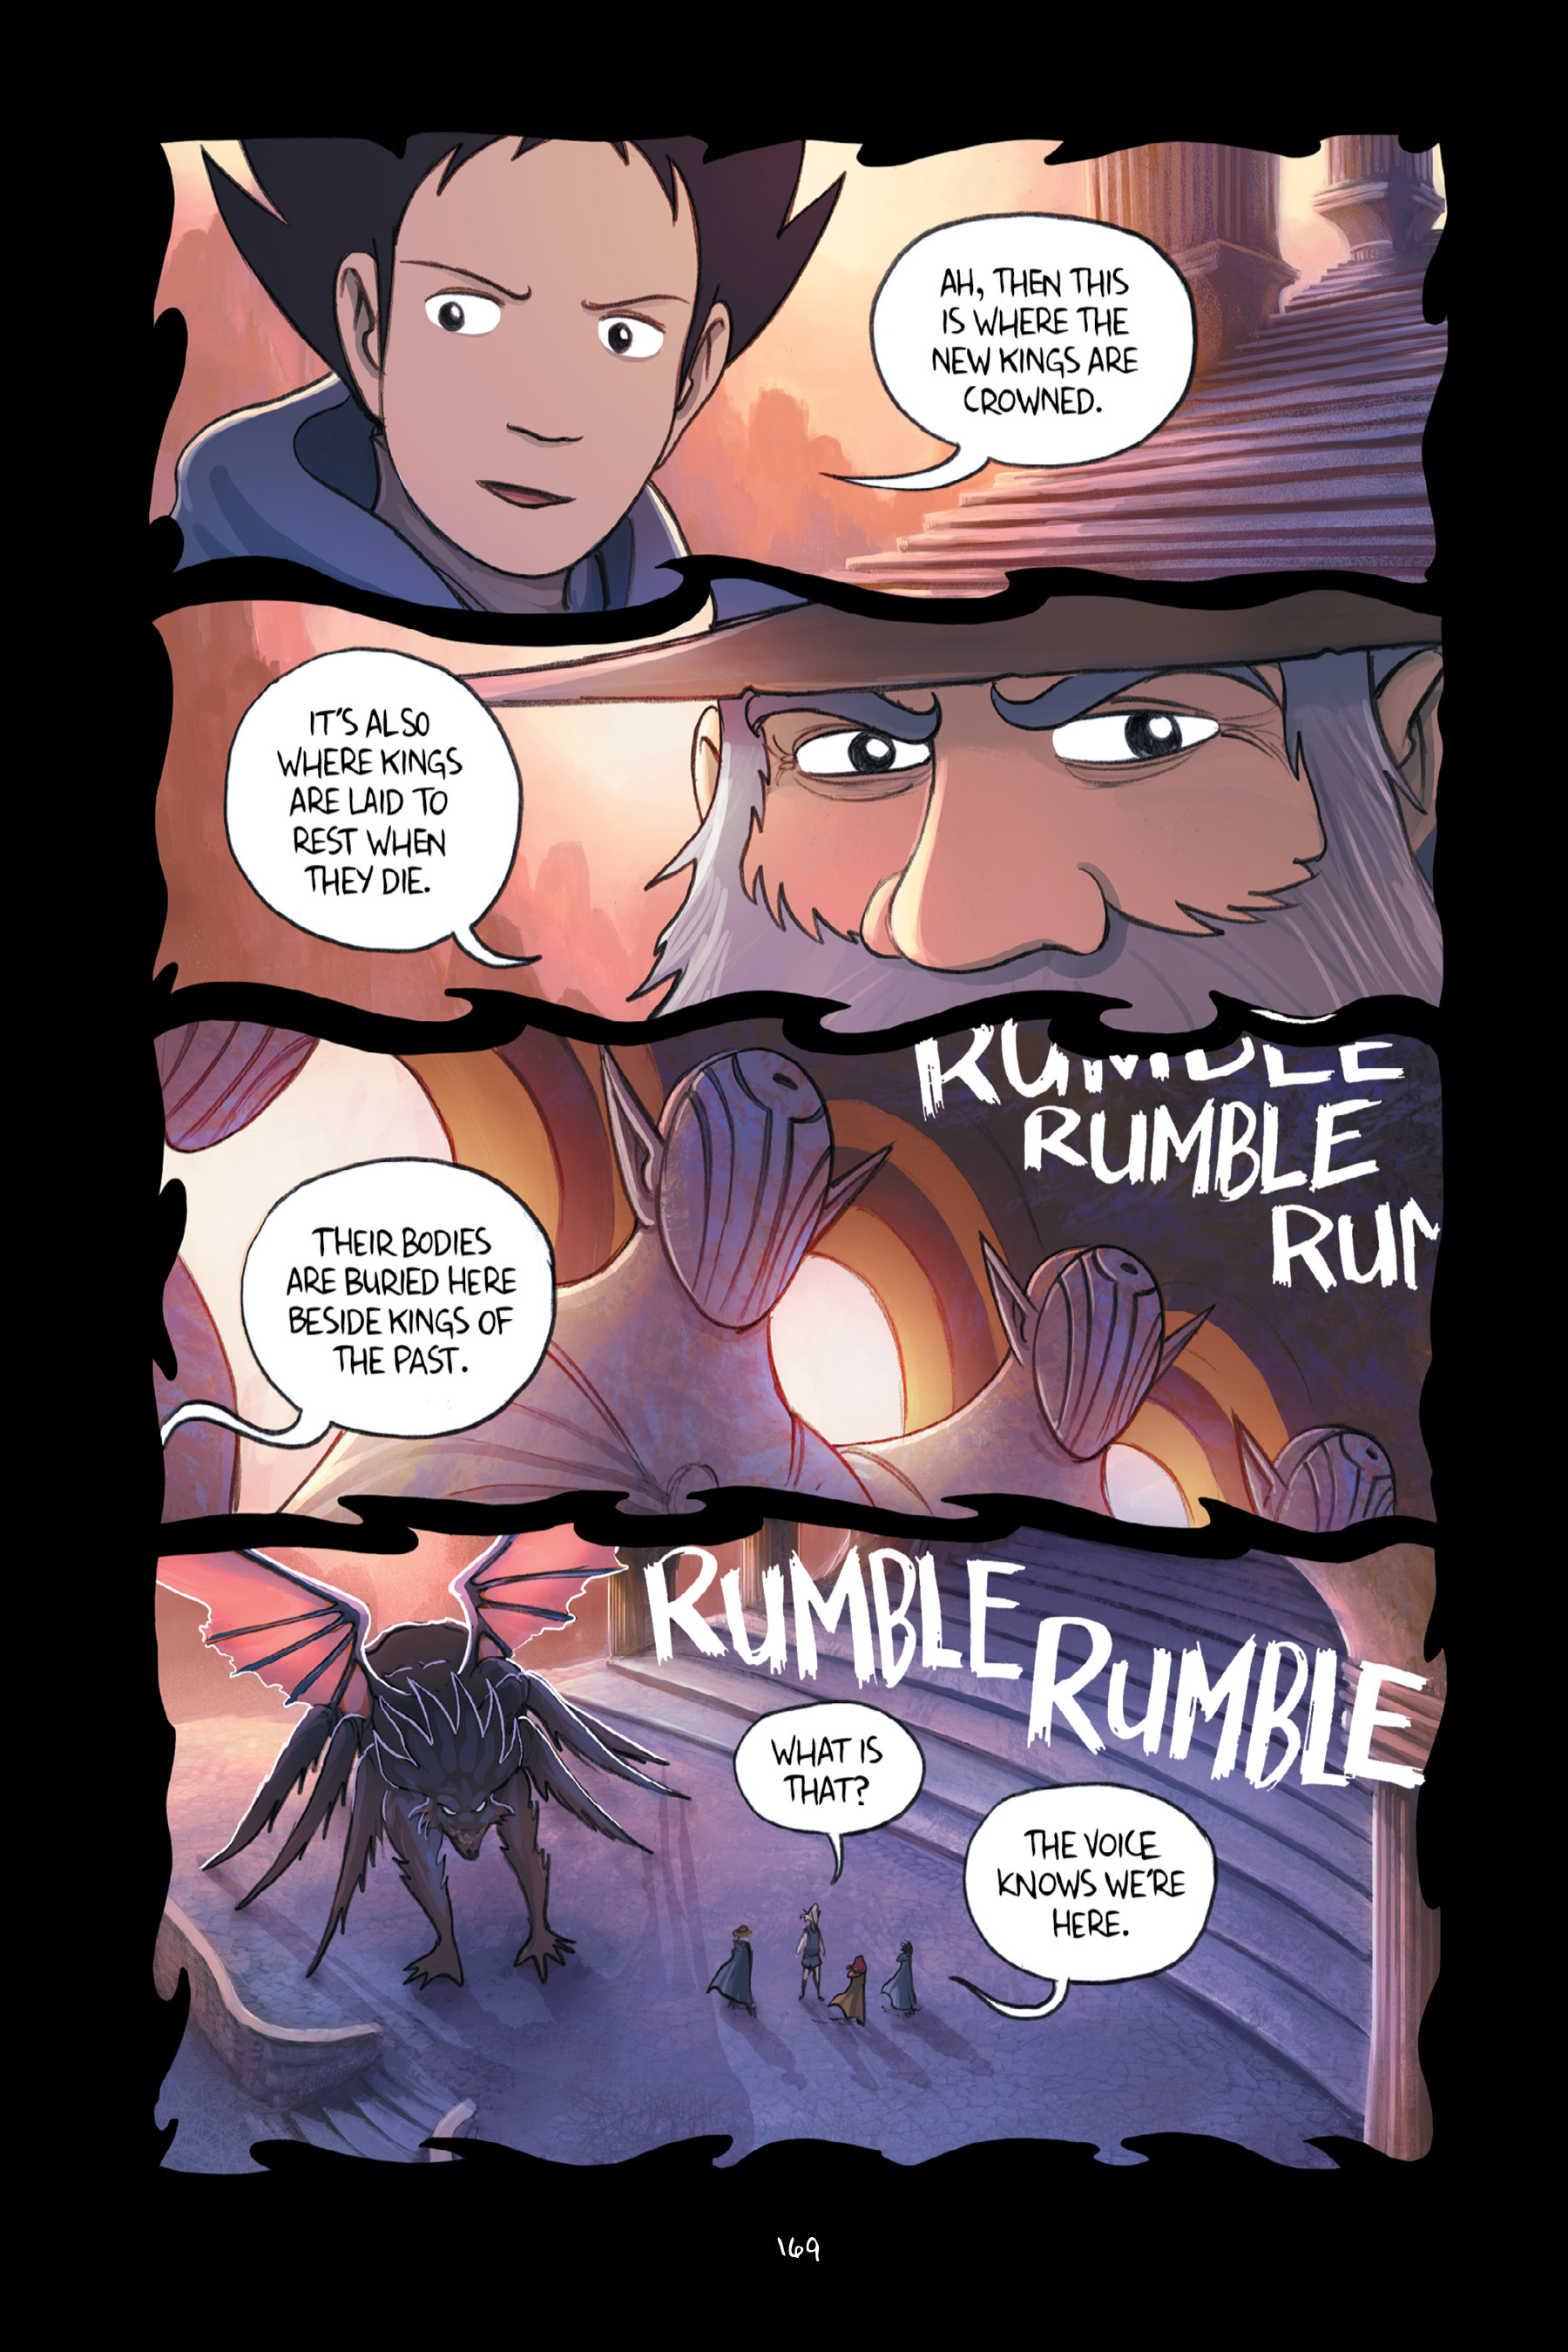 Read online Amulet comic -  Issue #6 - 169